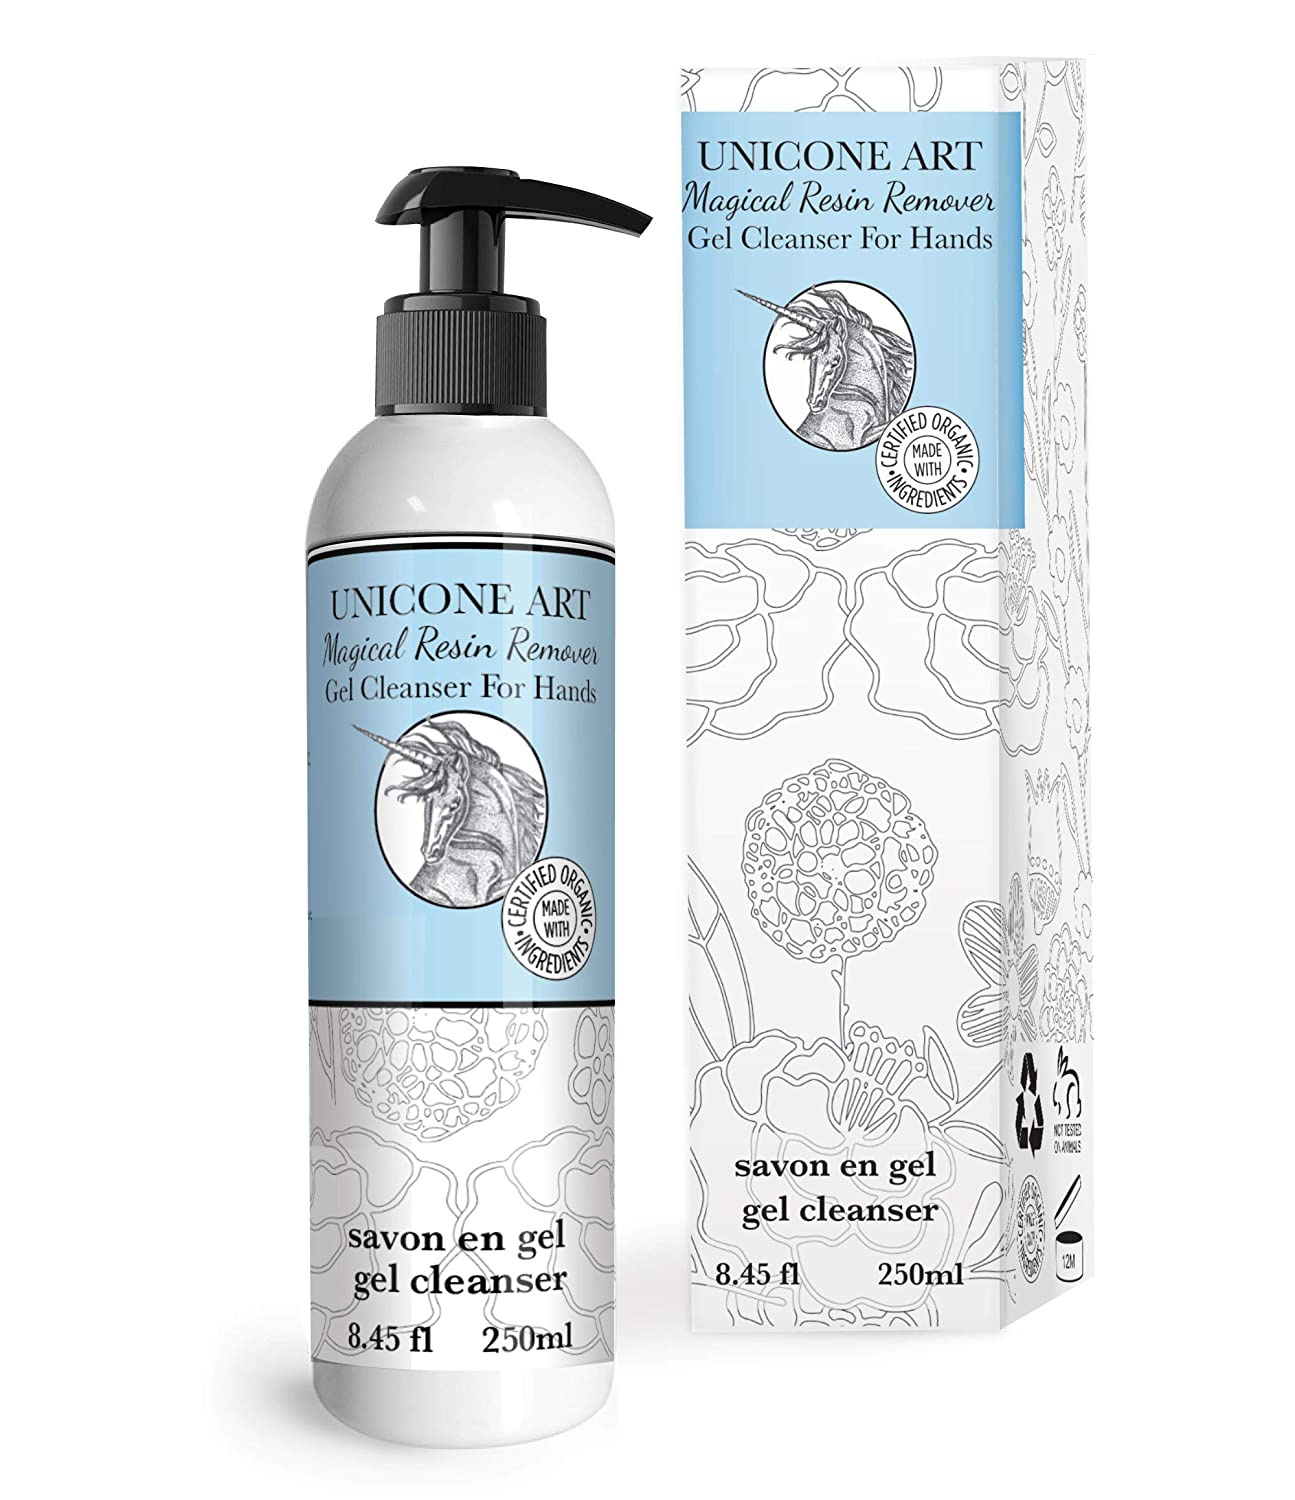 Magical Resin Remover - All Natural - Hand Gel Cleanser - Soap - Moisturizing - for Artists - for use with paint, glues, epoxies, glitter - 8oz.